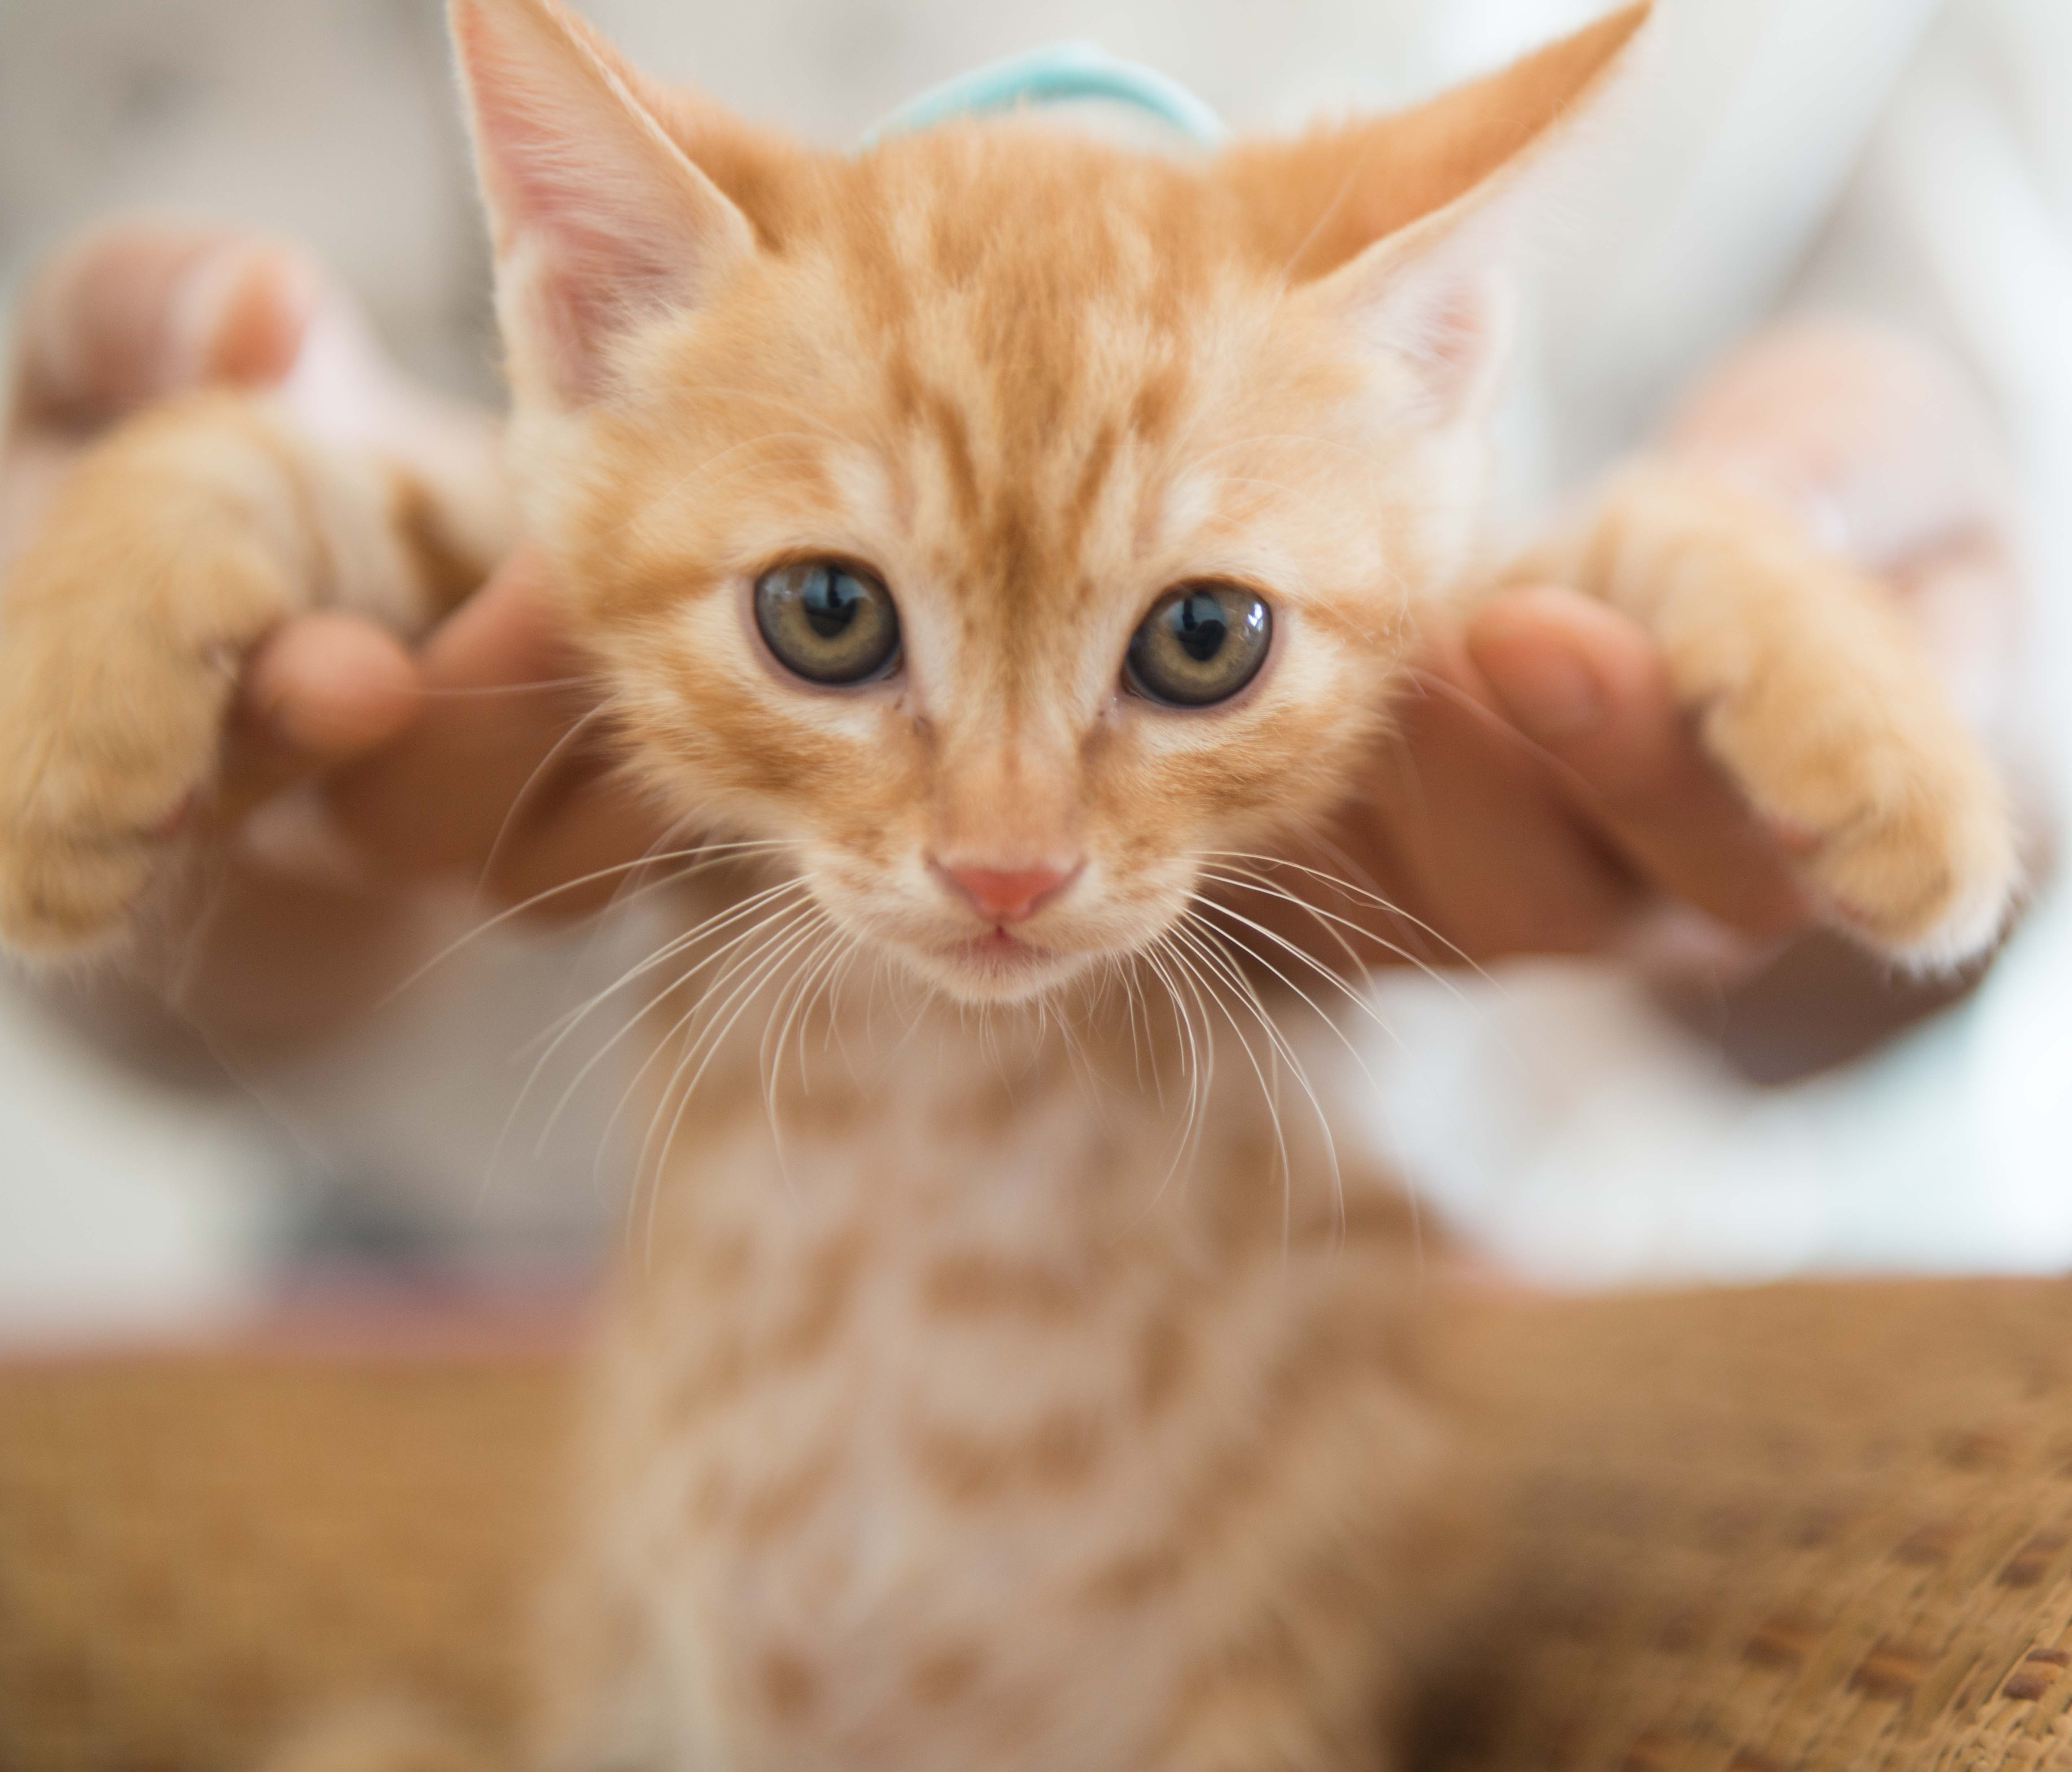 Free stock photo of baby cats cute free download thecheapjerseys Gallery